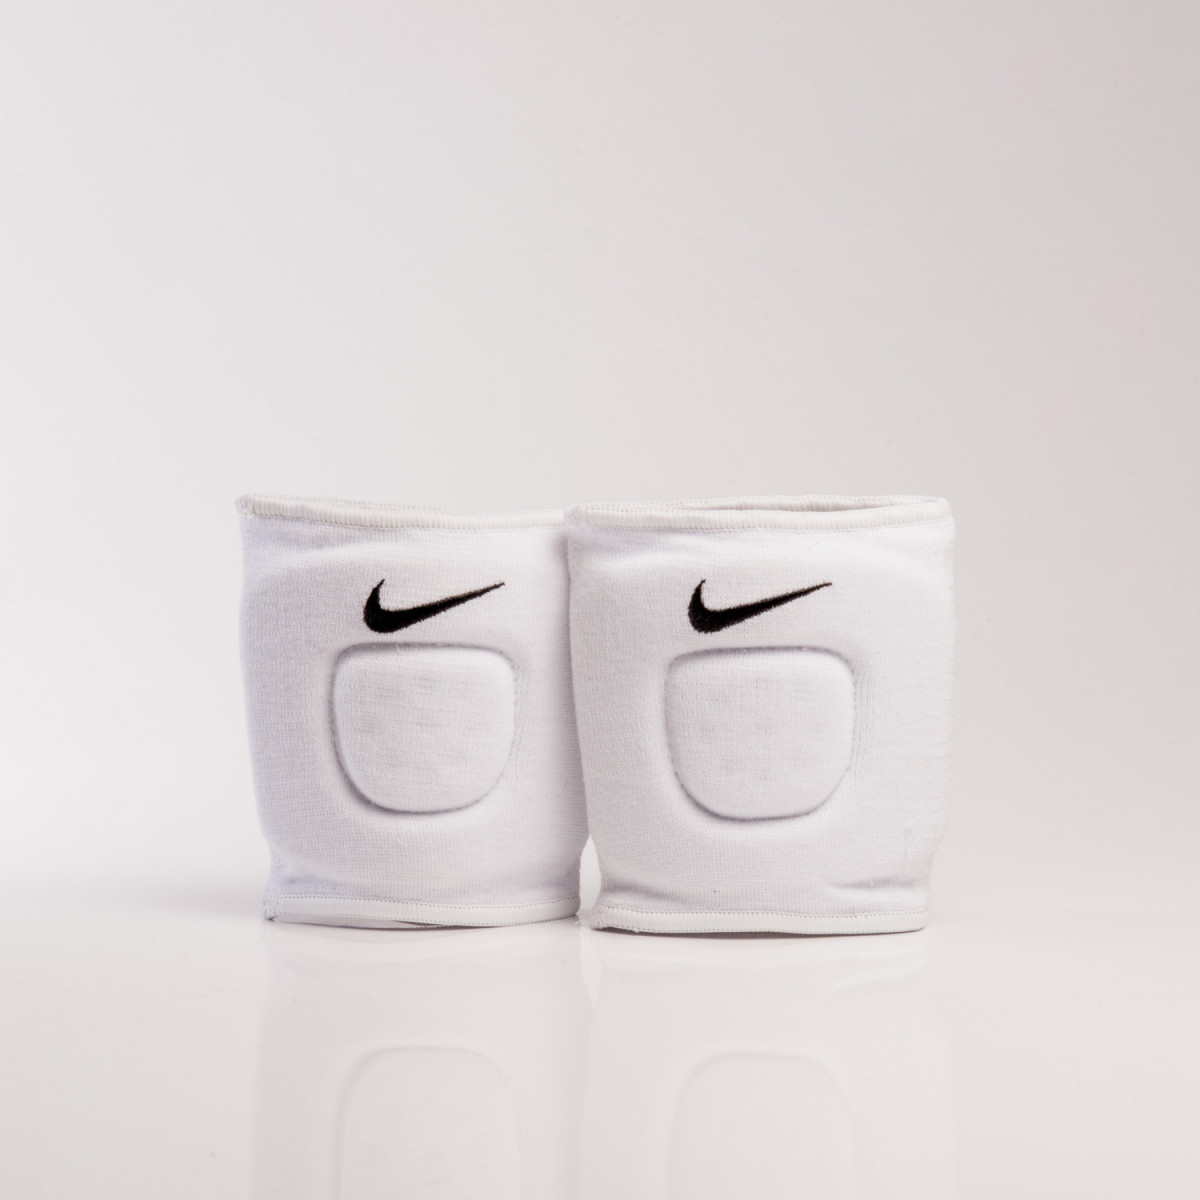 RODILLERAS NIKE N100 VOLLEYBALL KNEE W